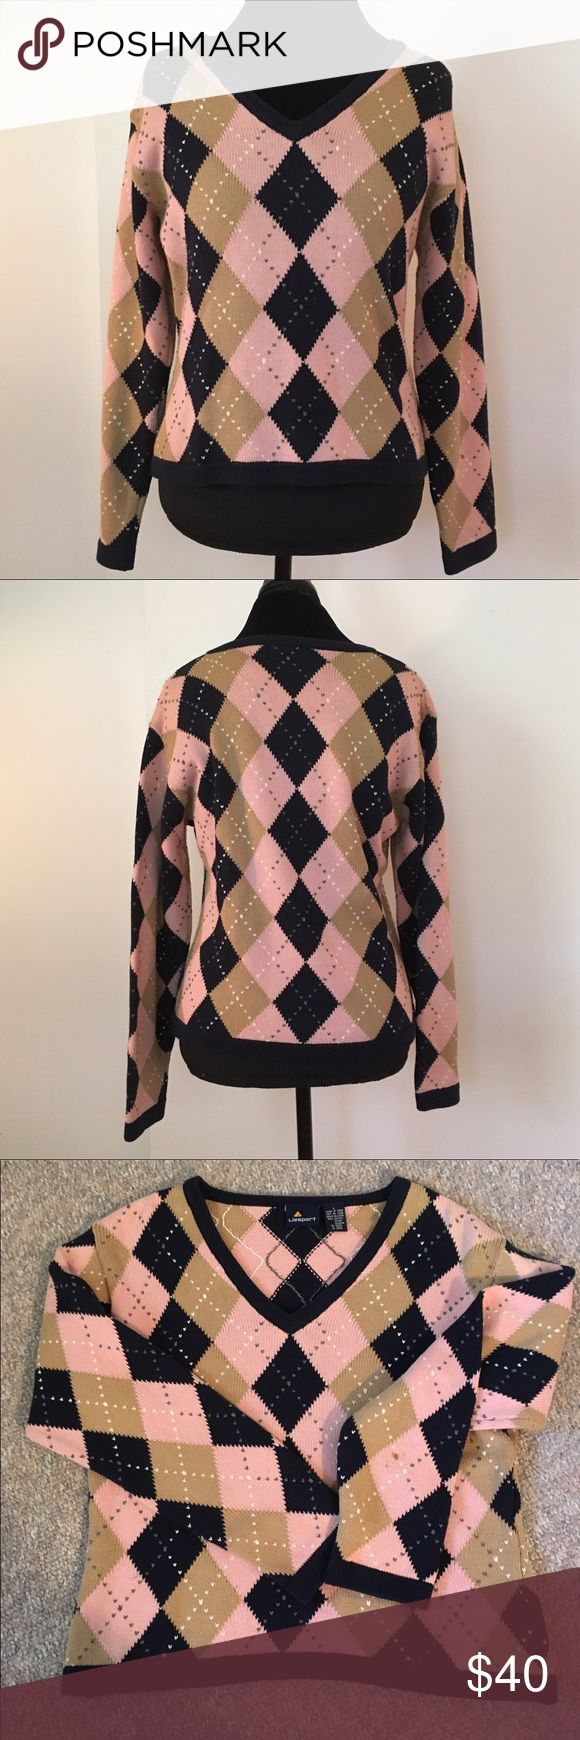 Liz Sport Vintage Argyle Sweater 100% Cotton Argyle Sweater. I think I just wore it one time. Please see the one close up photo where there is a small stain on the sleeve. Runs small, so please also see photos with tape measure 💕 Liz Claiborne Sweaters V-Necks